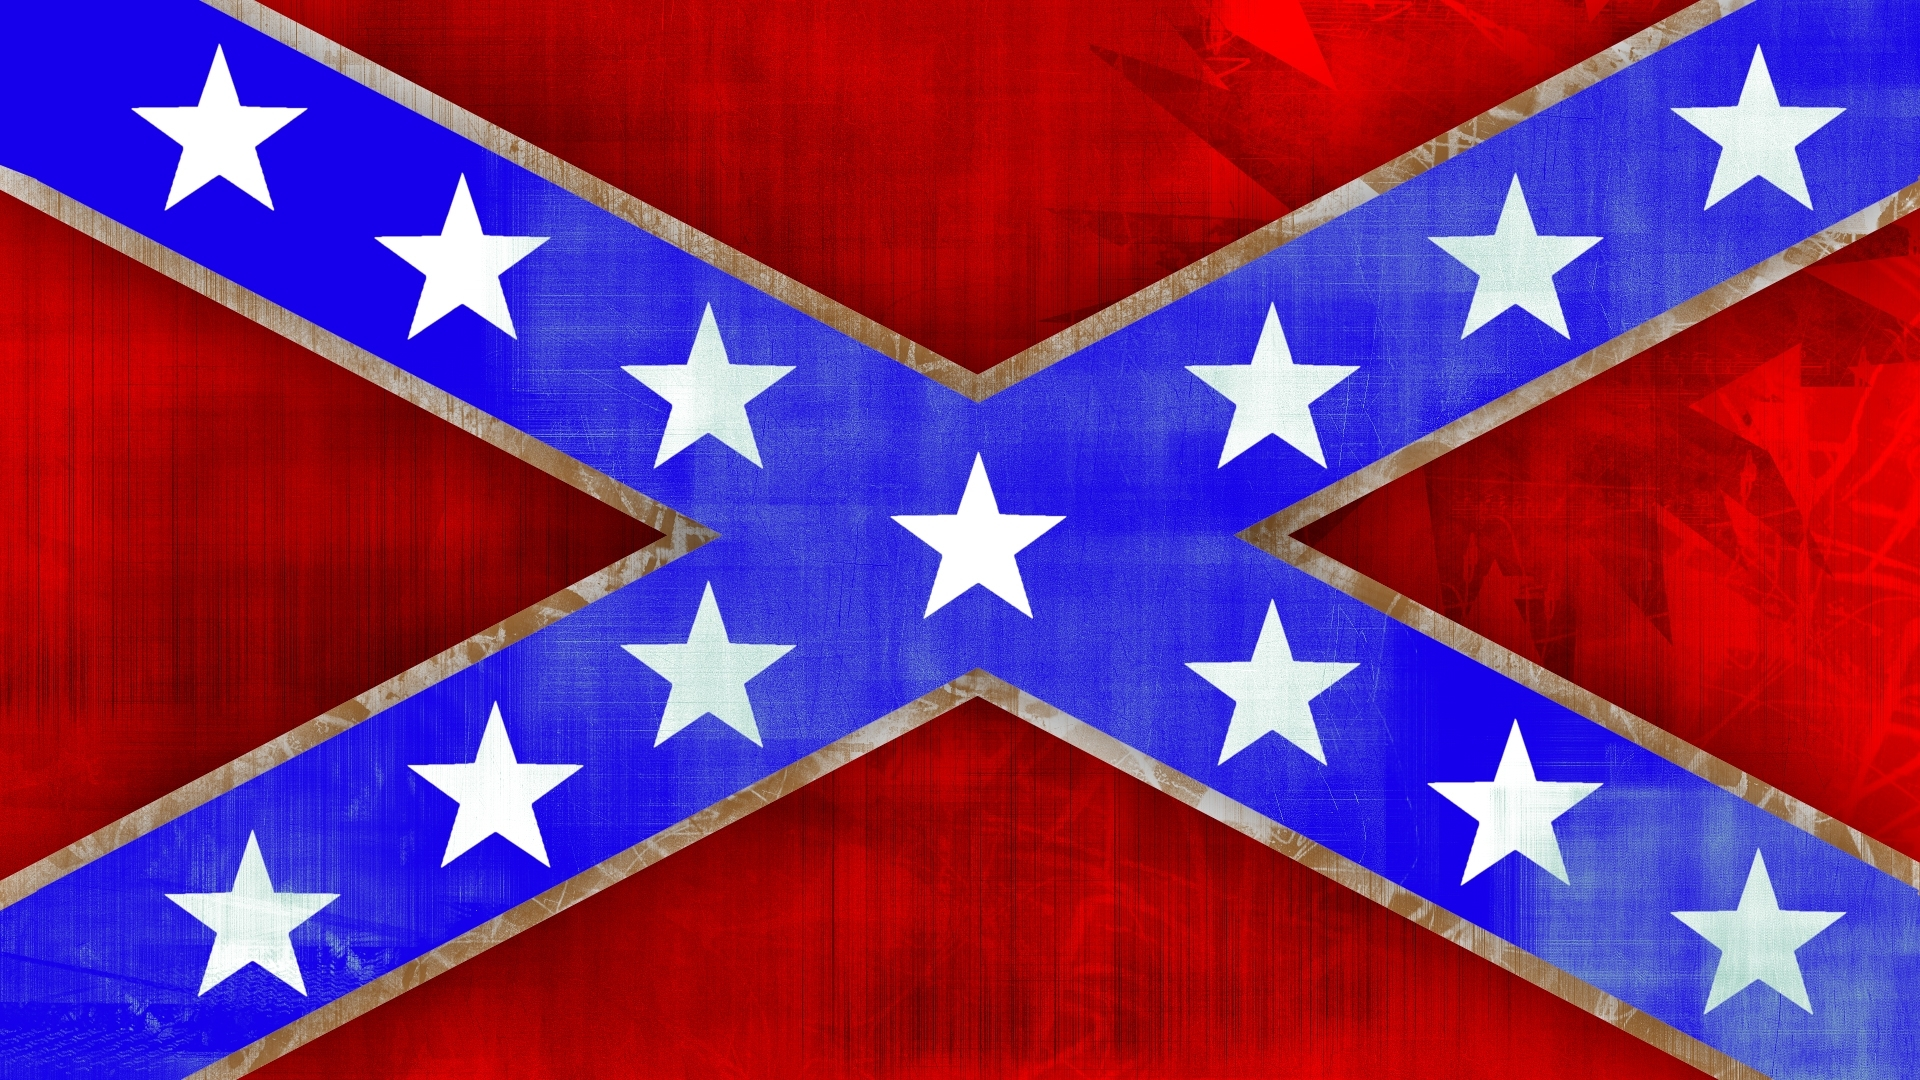 ai:327 - confederate flag wallpapers, confederate flag hd pictures